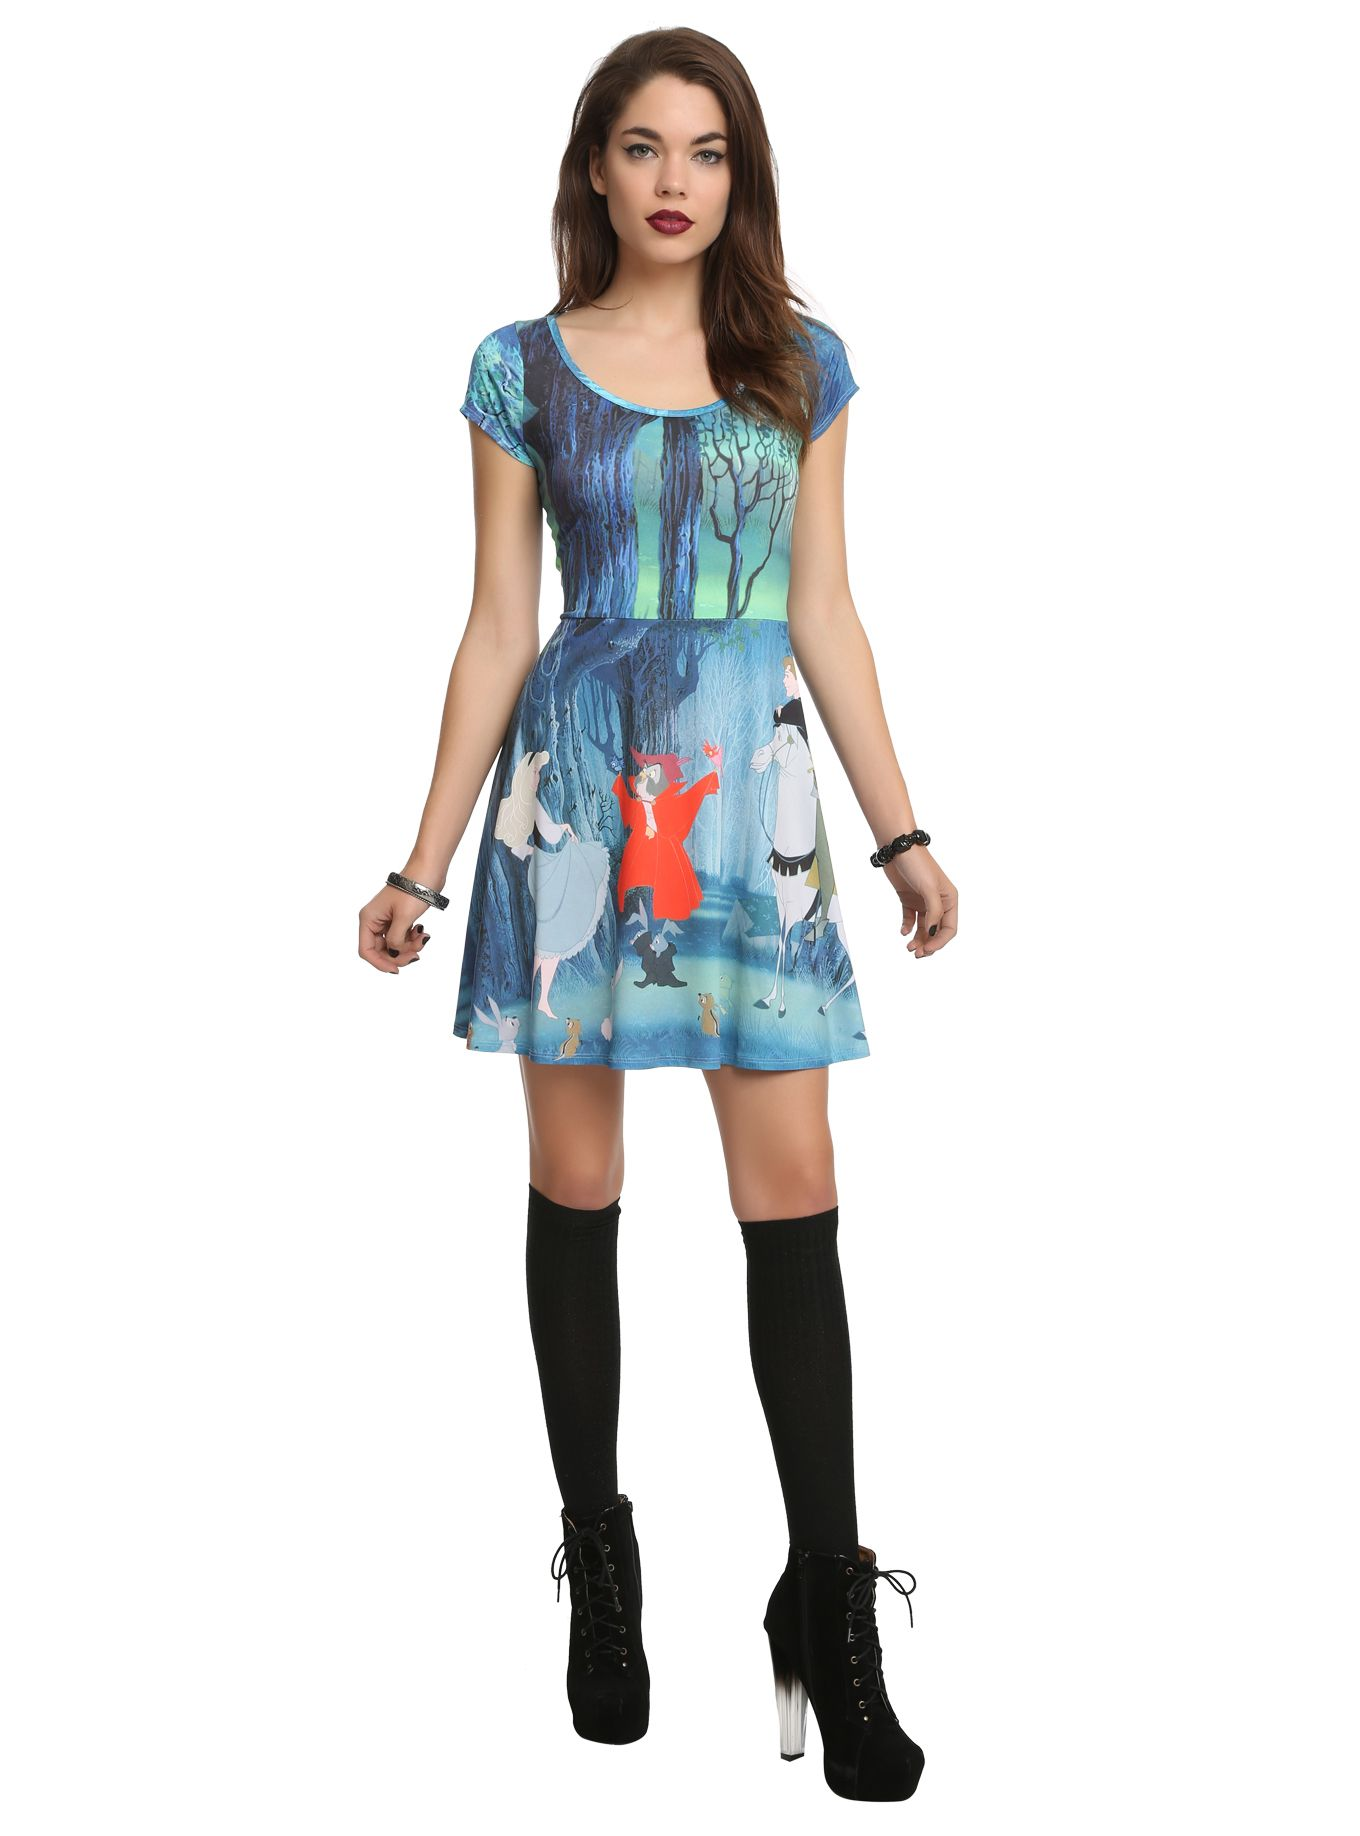 21+ Bambi dress hot topic ideas in 2021